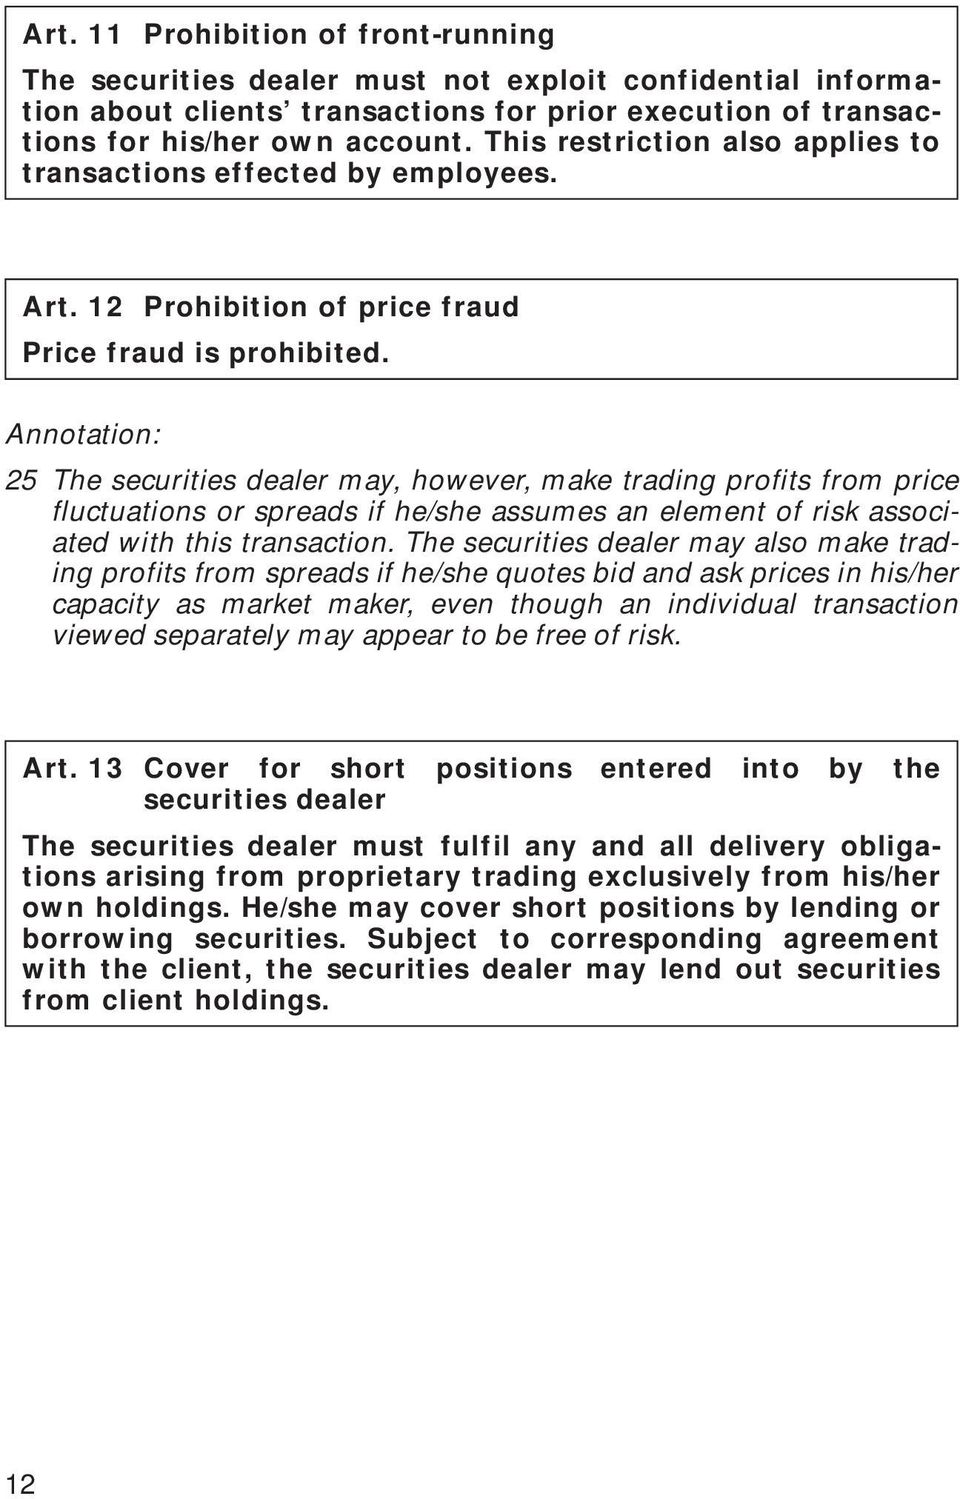 Annotation: 5 The securities dealer may, however, make trading profits from price fluctuations or spreads if he/she assumes an element of risk associated with this transaction.